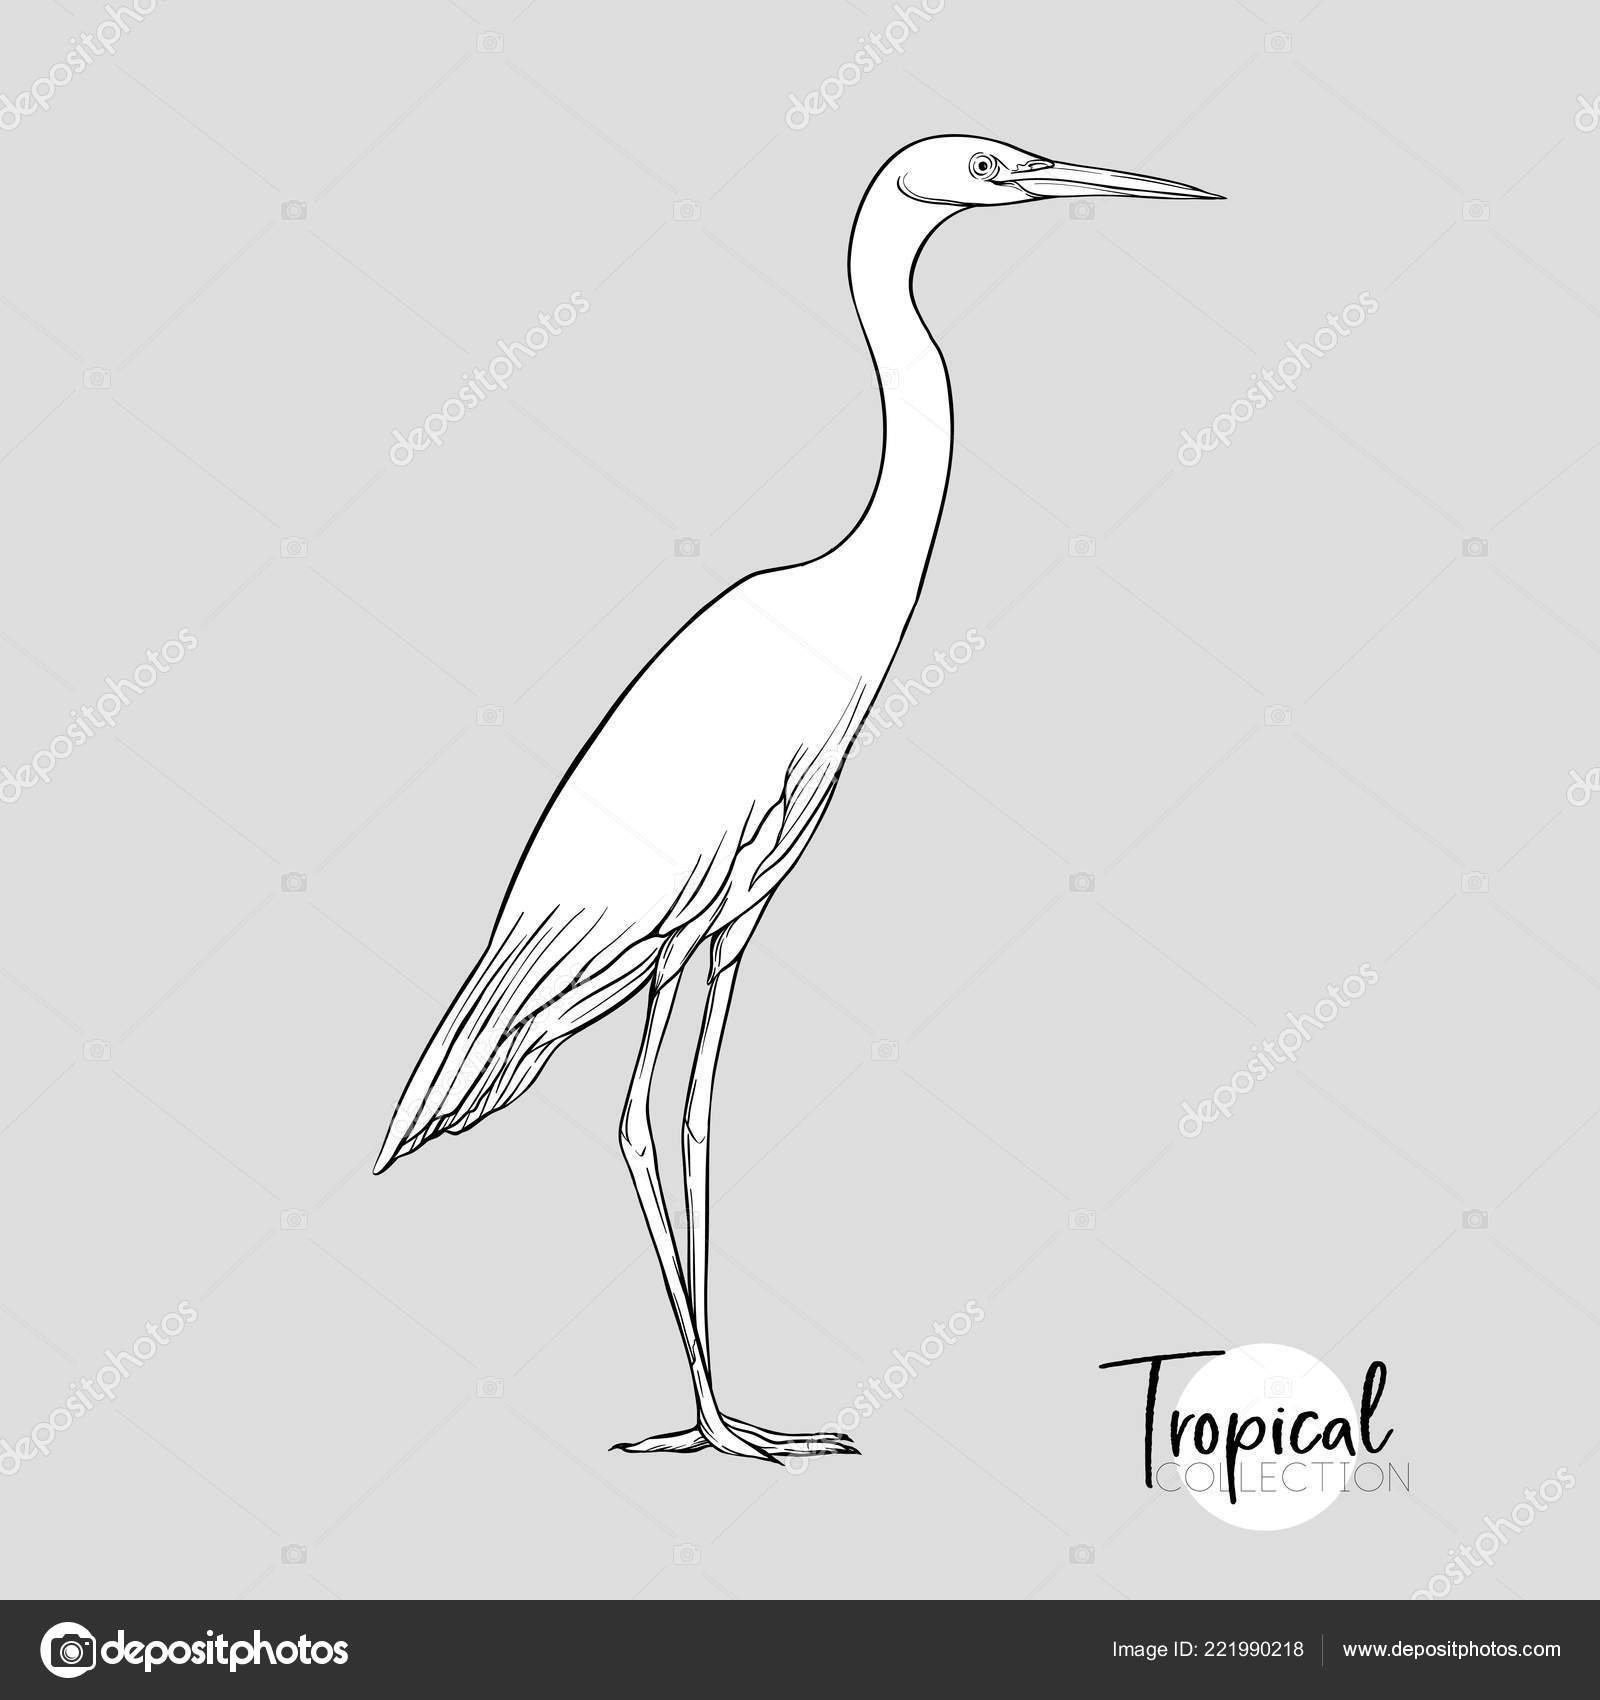 White Heron Tropical Bird Graphic Drawing Engraving Style